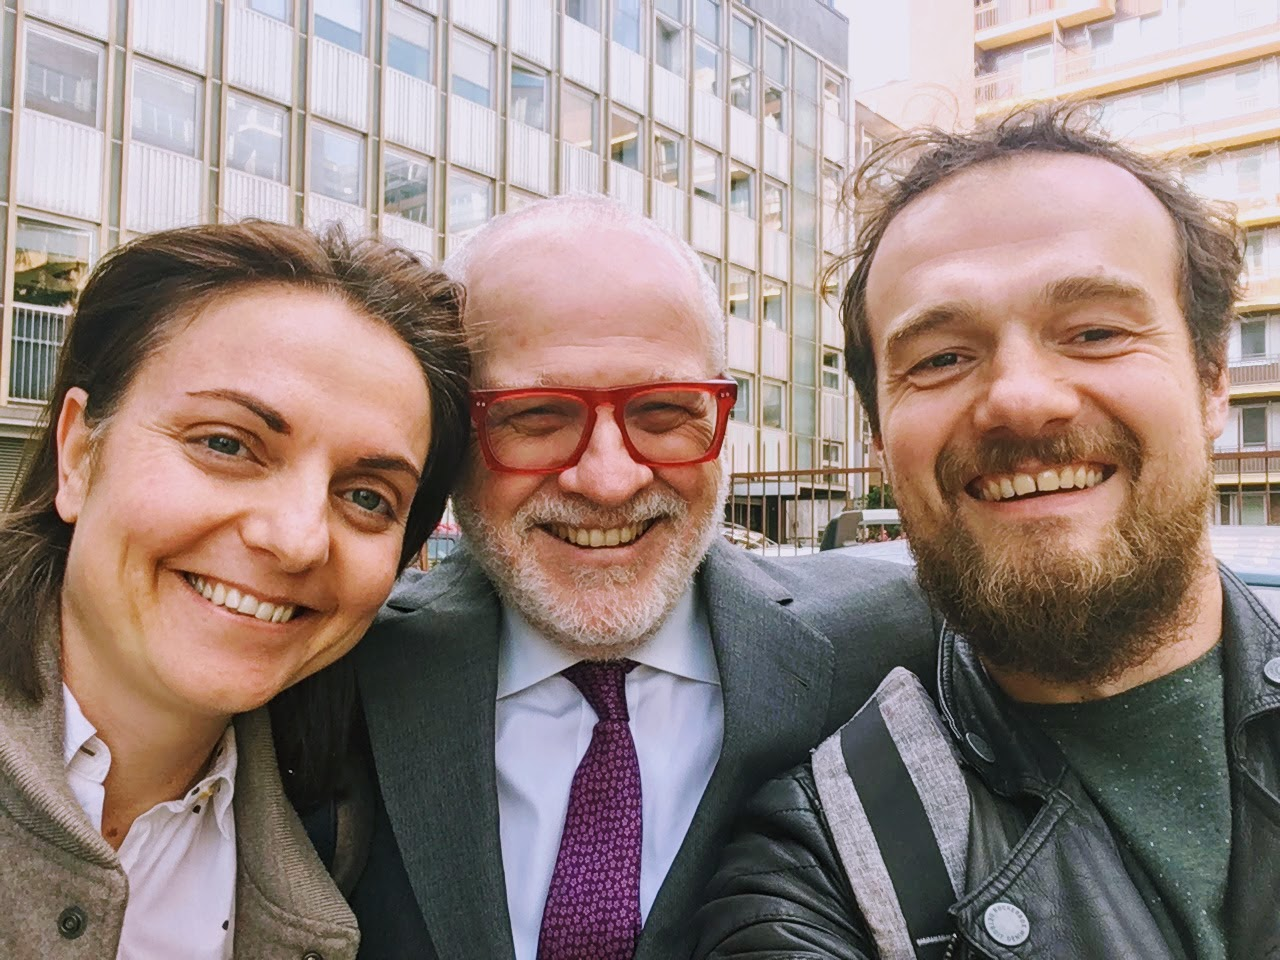 Happy faces after deciding to work together in April 2017, outside the ARC office in Milan, Italy.